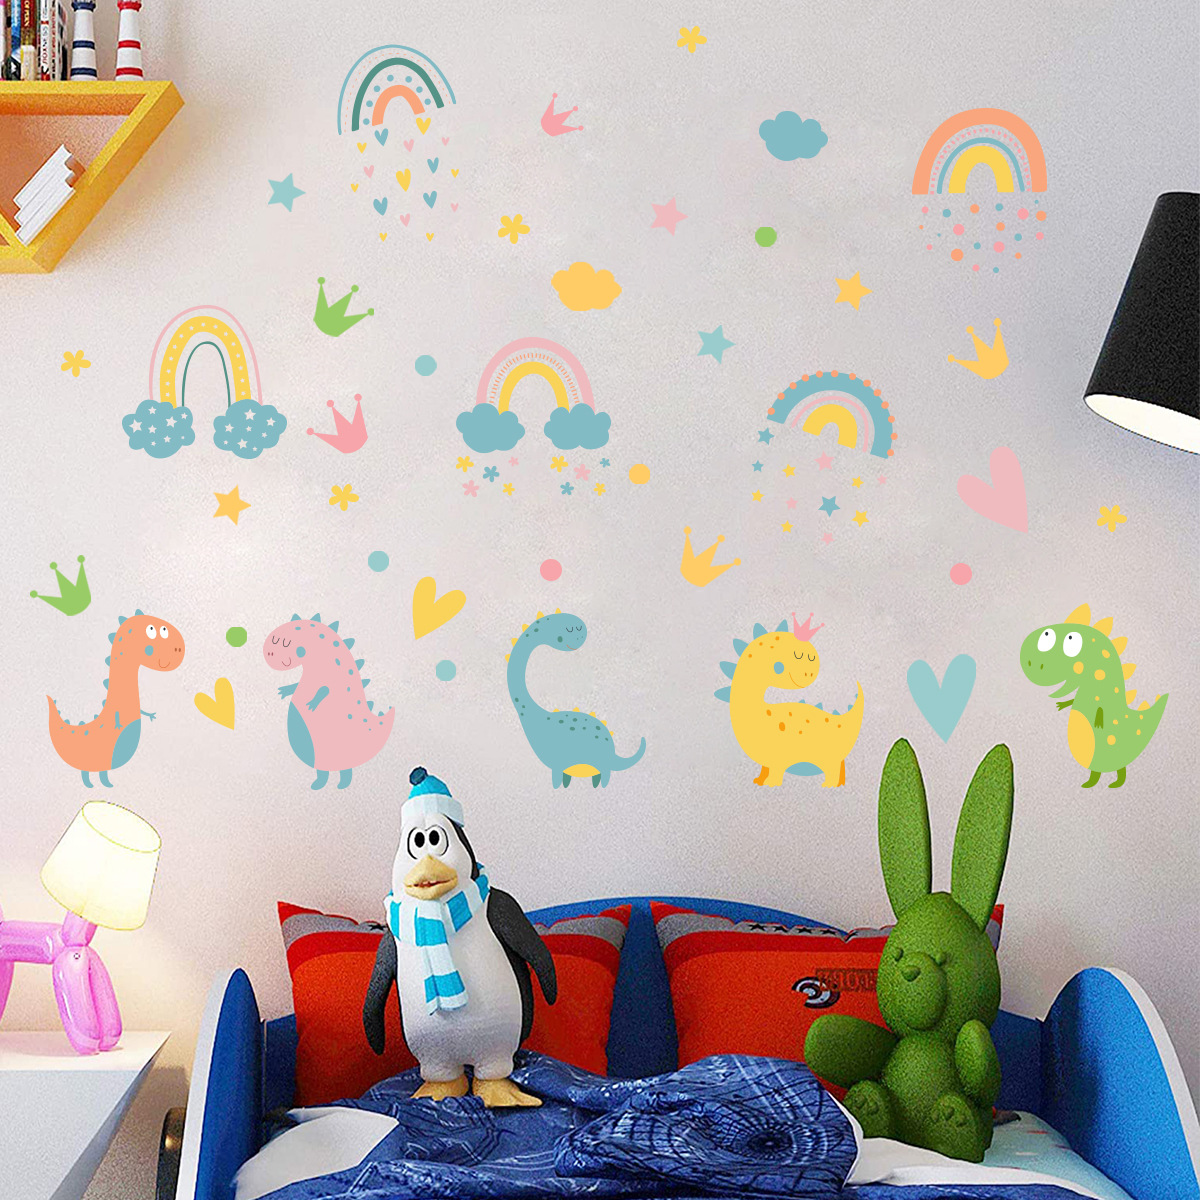 Dinosaur colorful clouds and stars creative wall stickers Living room bedroom background wall decoration wall stickers